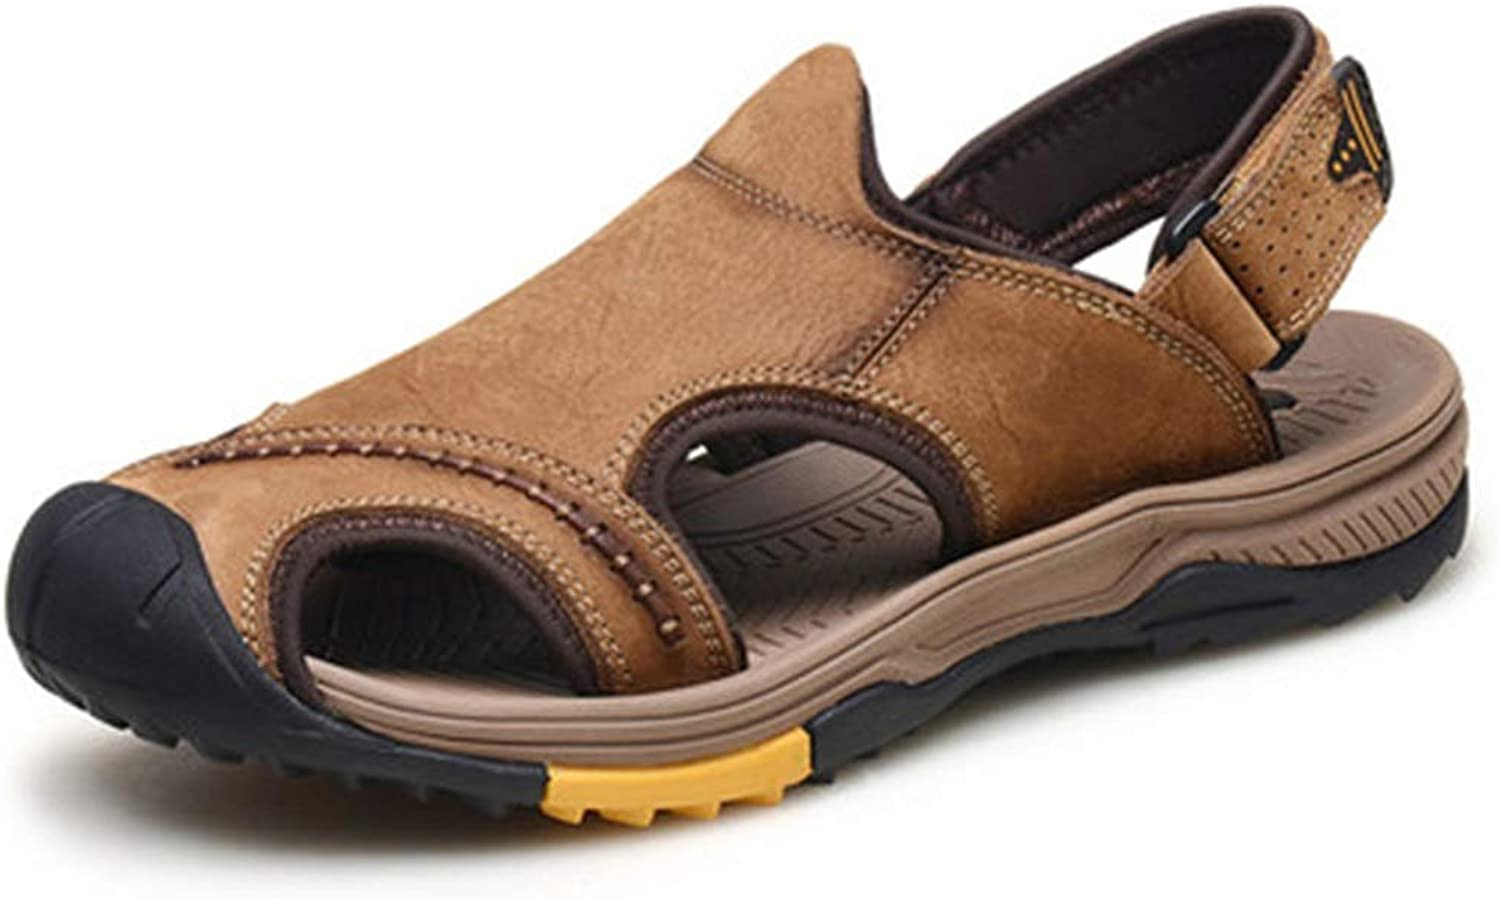 Sandals Sport & Outdoors Dynamic Leather Men's 2019 New Beach shoes Outdoor Non-Slip Simple Breathable(color )(Size )